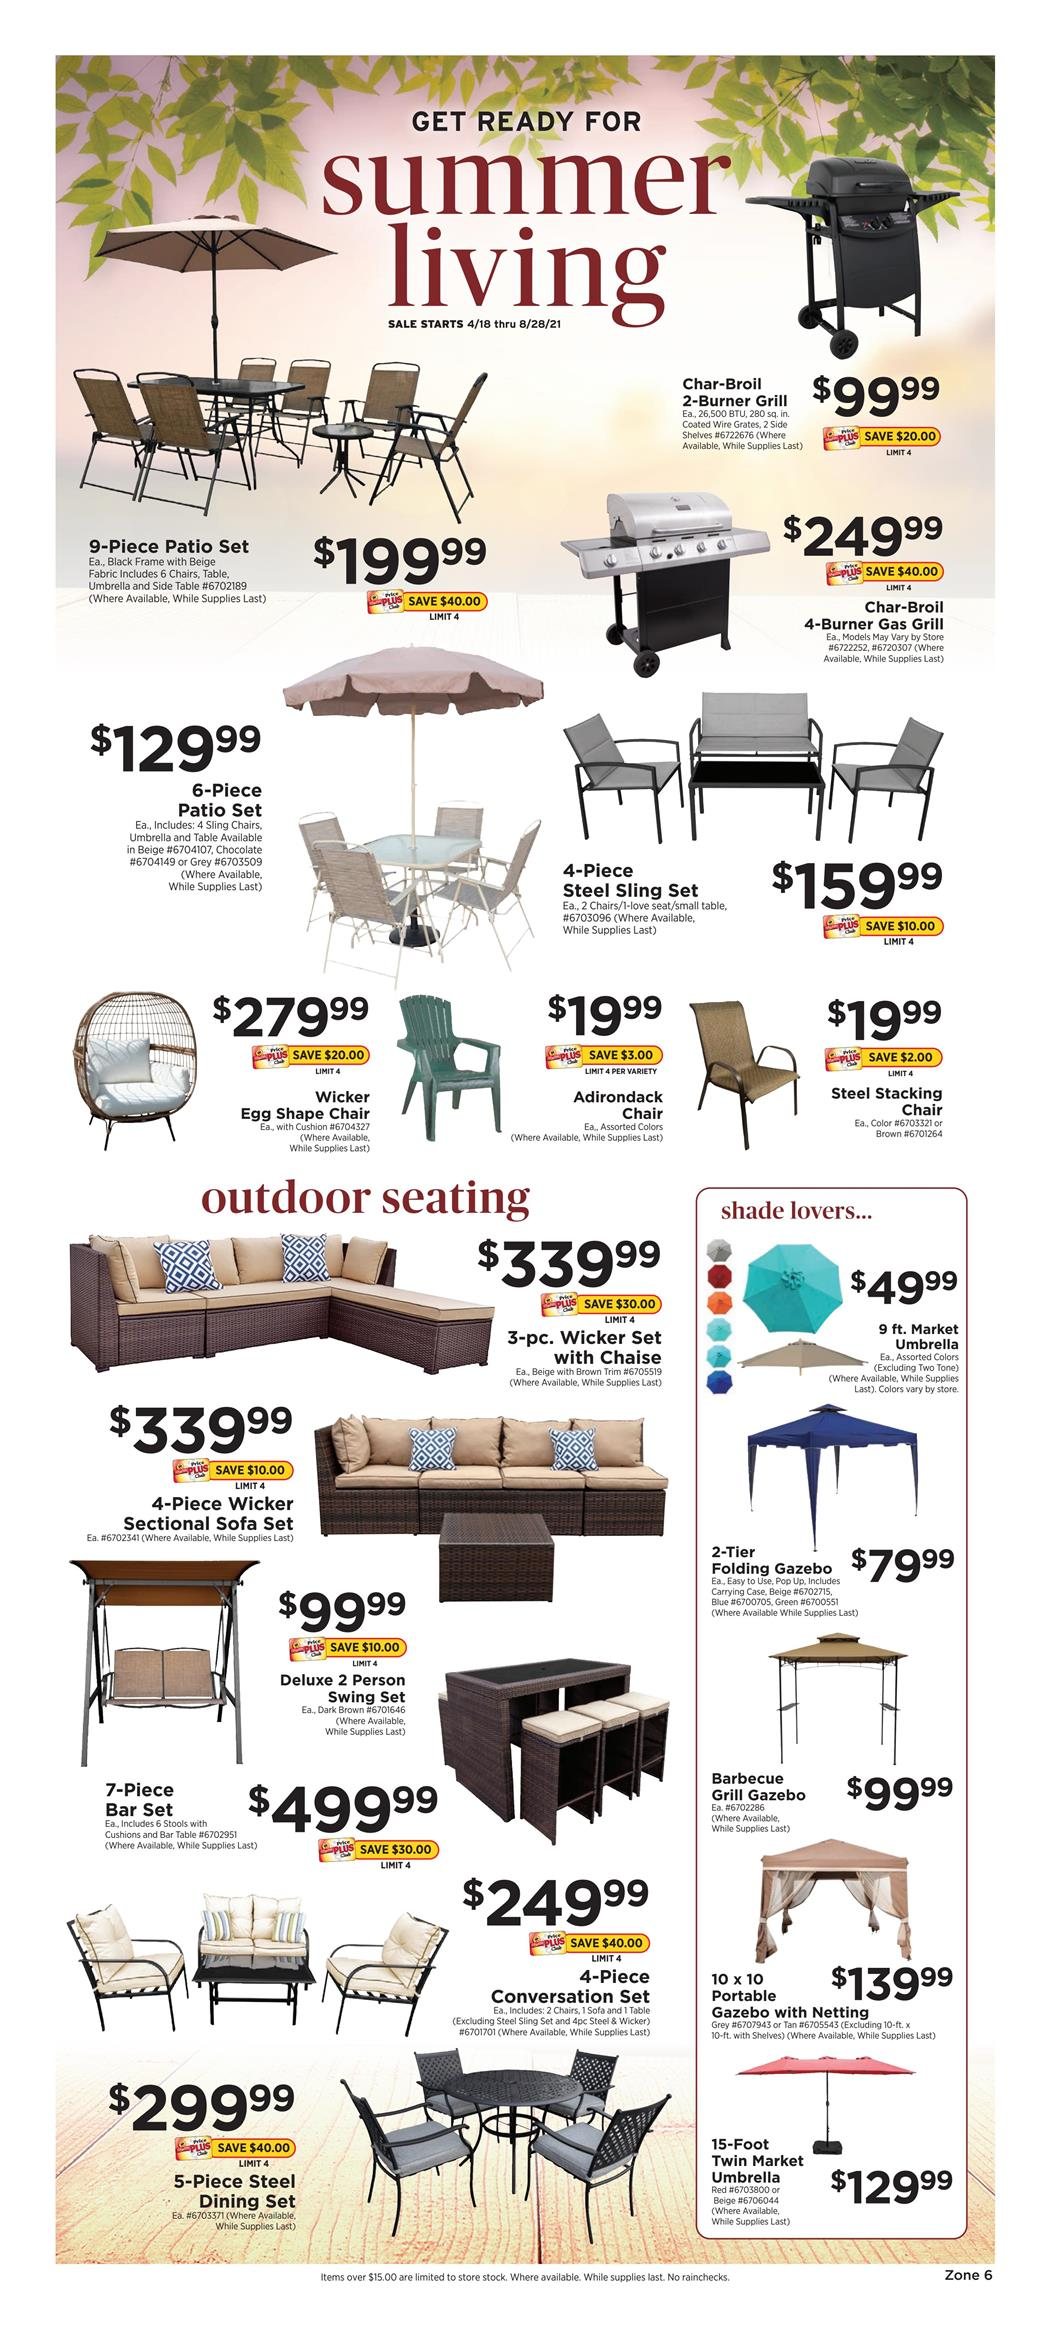 ShopRite Weekly ad April 18 - August 28, 2021 Get Ready for Summer Living